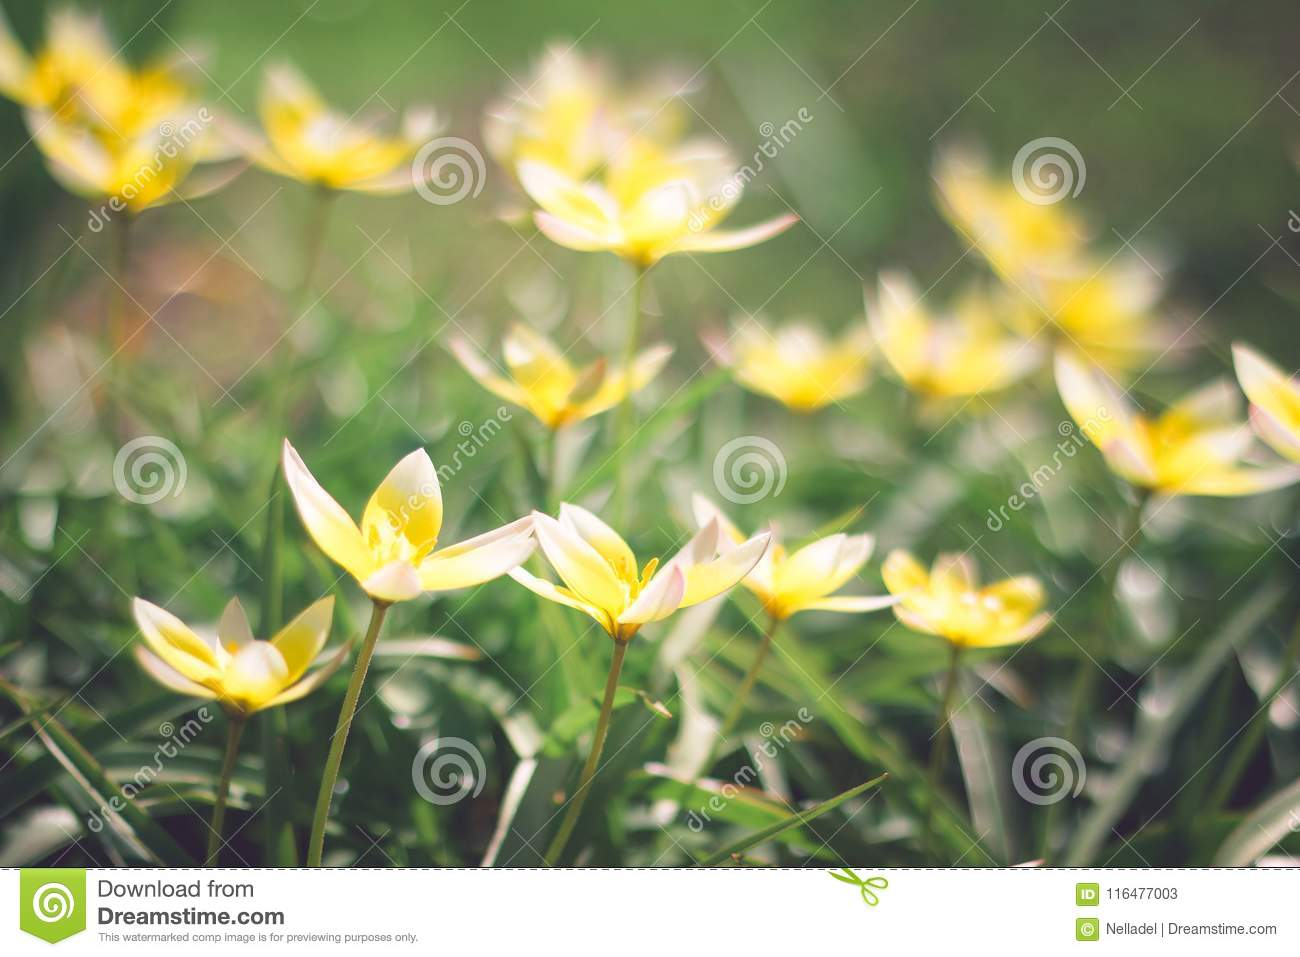 Small yellow flowers on flowerbed stock image image of ball small yellow flowers on flowerbed mightylinksfo